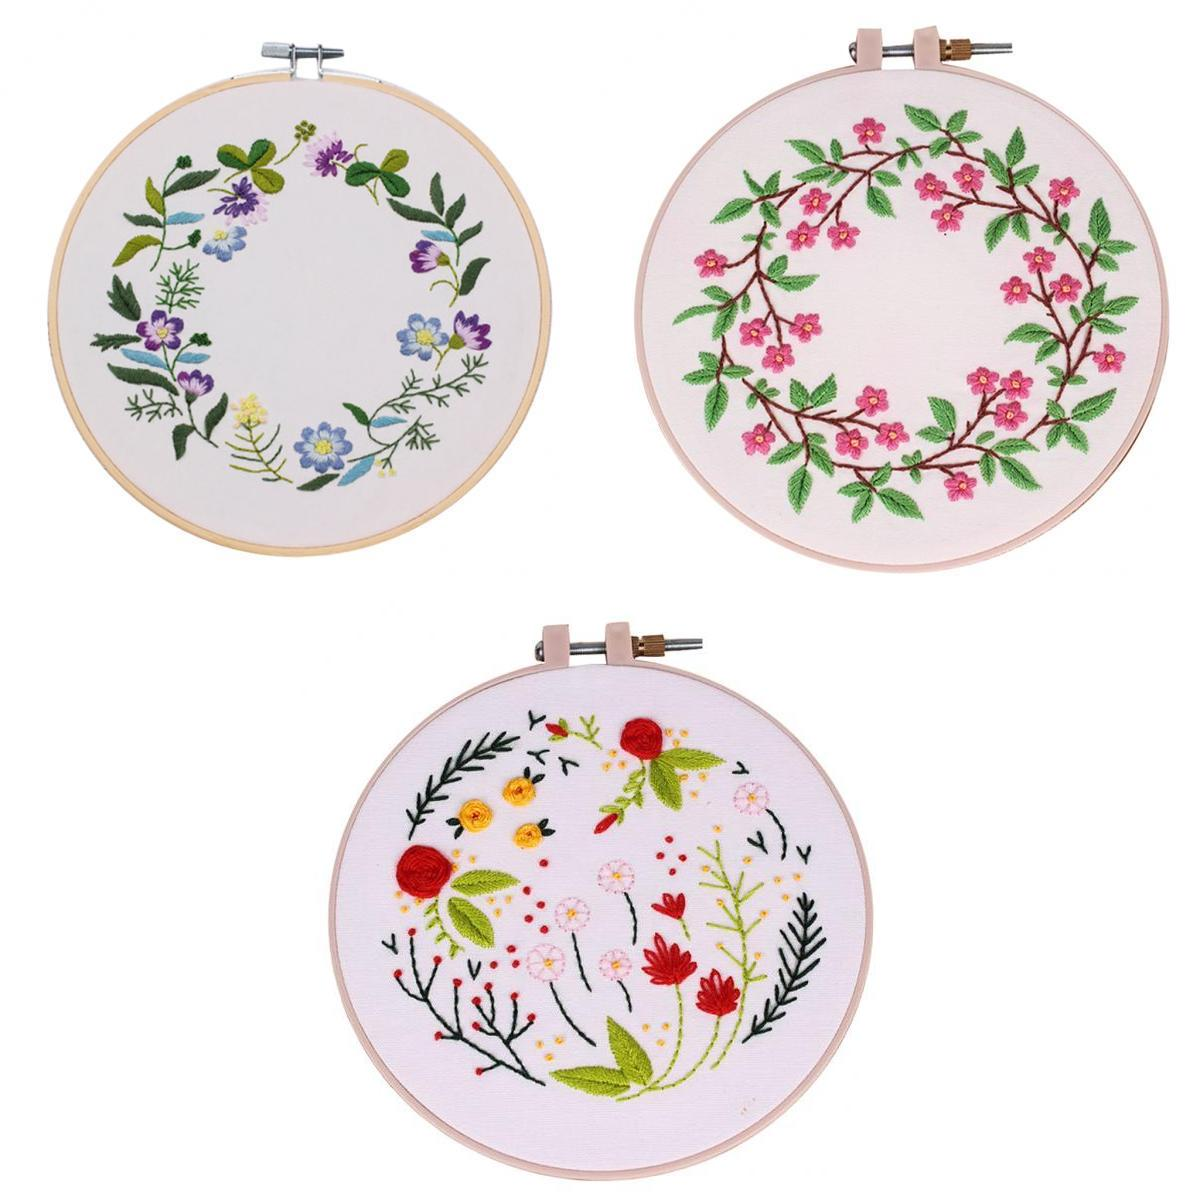 Hot Sale 3pcs Leaf Floral Hand Embroidery Cross Stitch Patterns